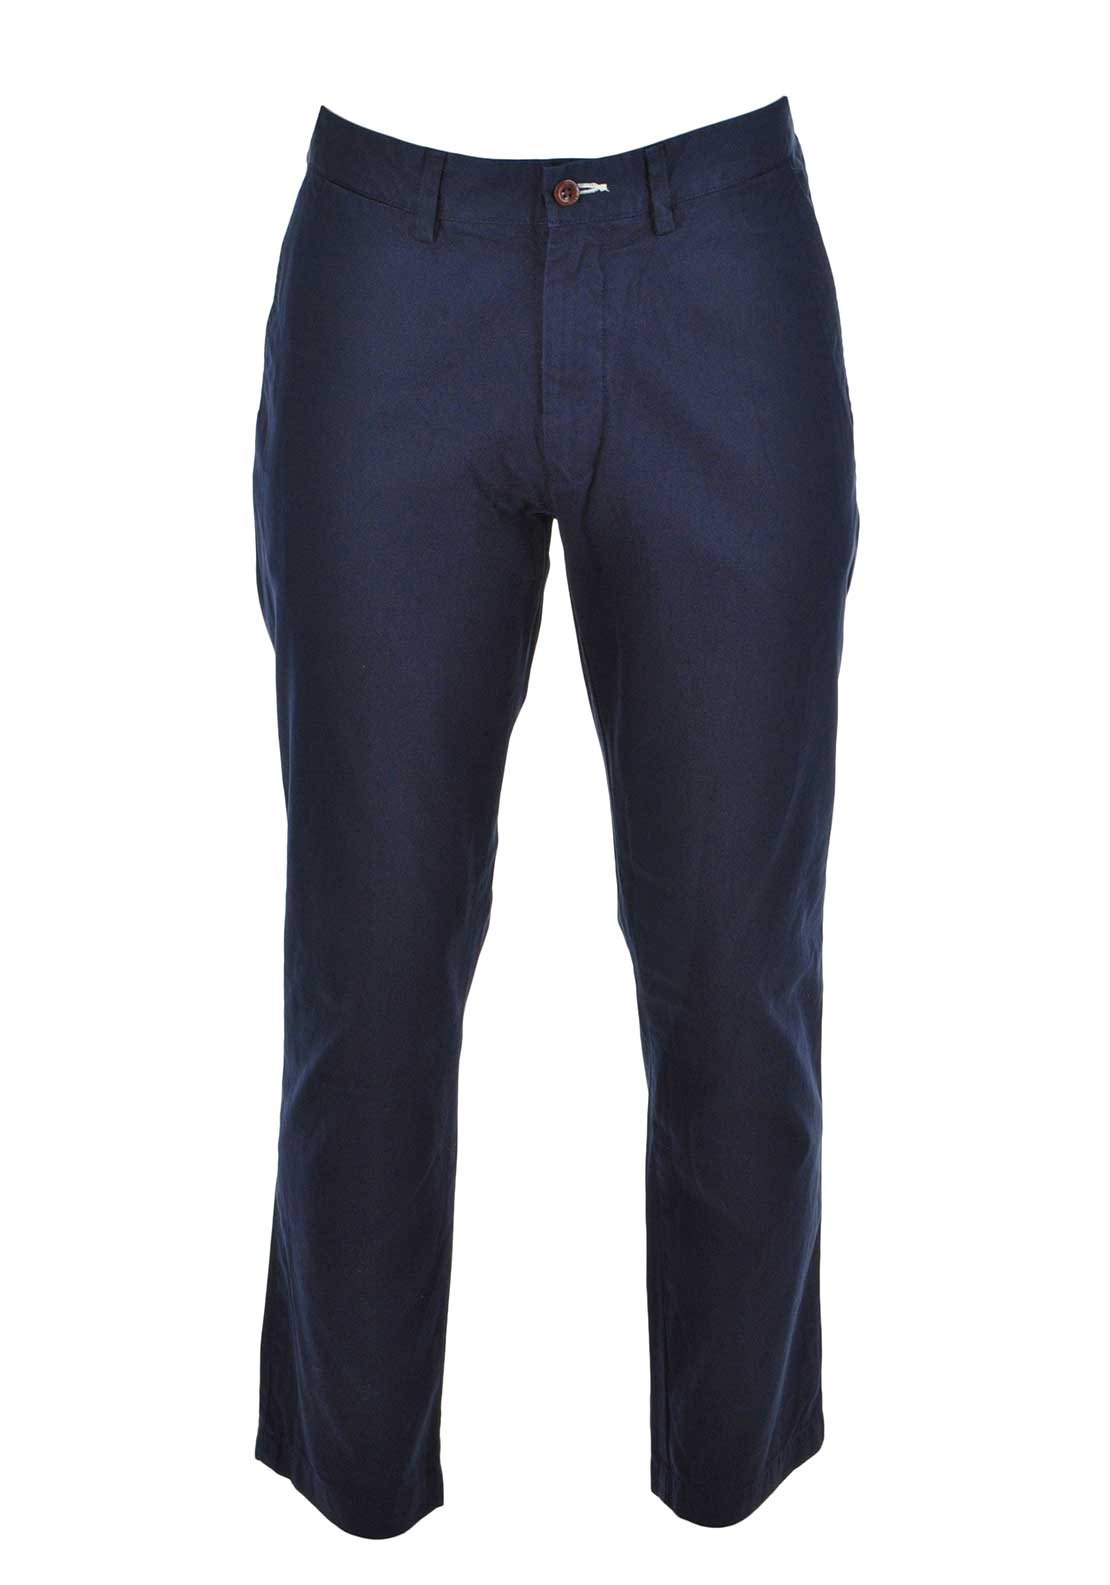 GANT Mens Regular Fit Cotton Chinos, Navy